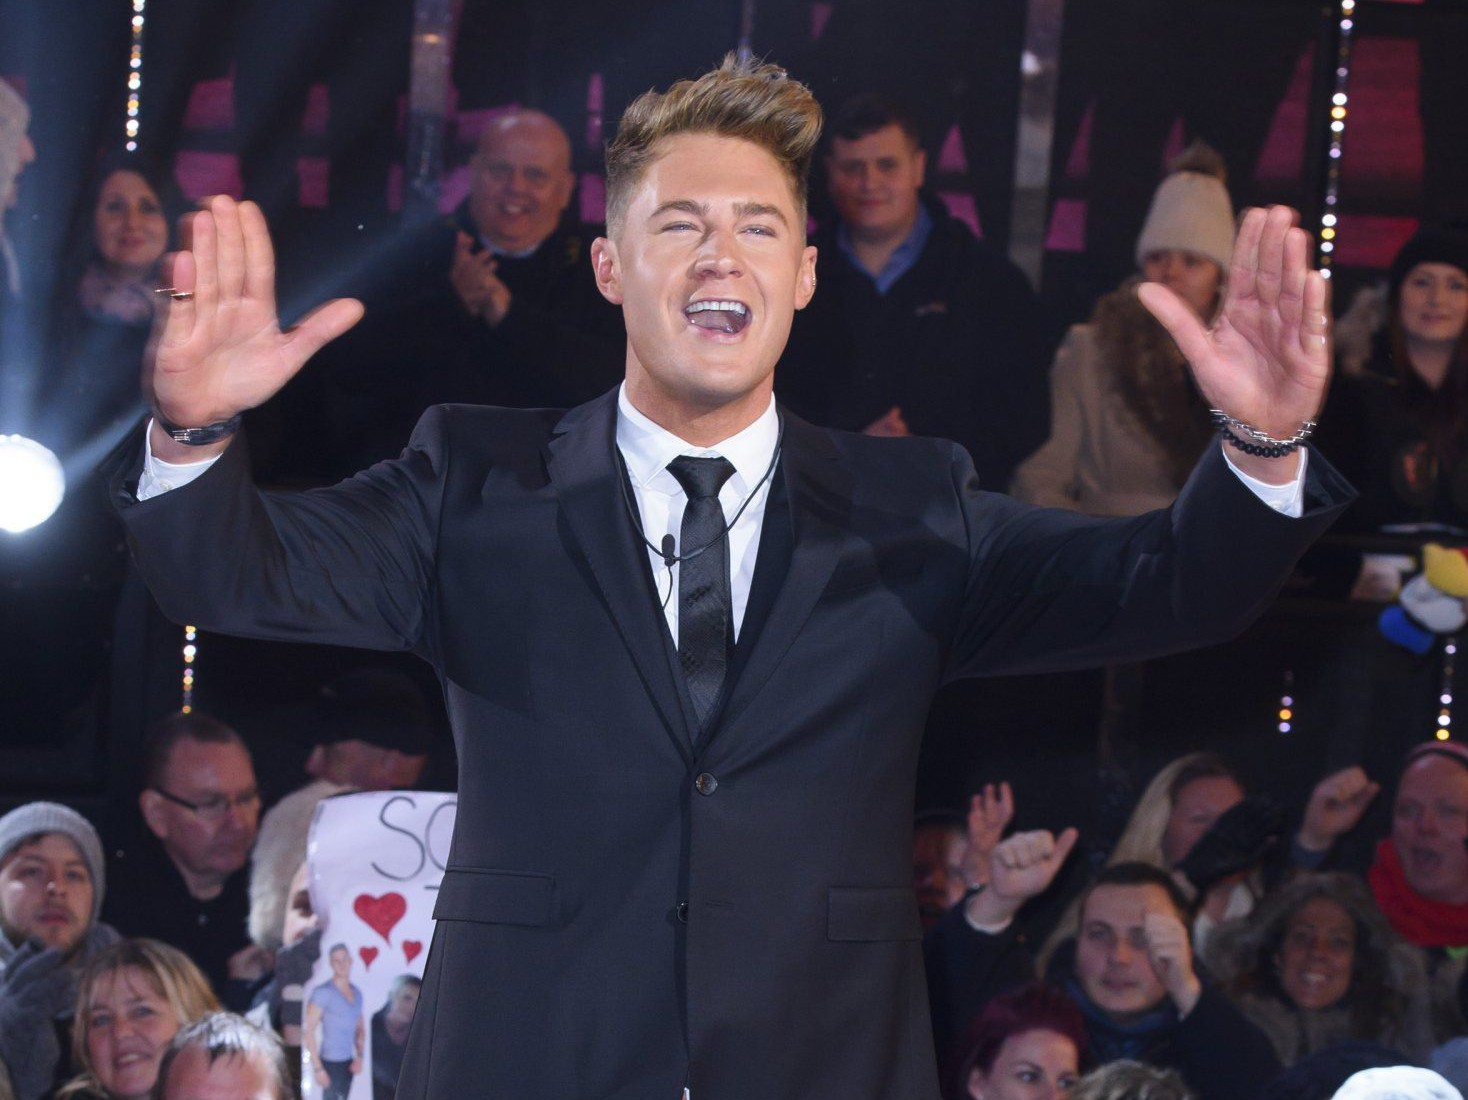 Mandatory Credit: Photo by Jonathan Hordle/REX/Shutterstock (5582961ai) Scotty T 'Celebrity Big Brother' TV show final, Elstree Studios, Hertfordshire, Britain - 05 Feb 2016